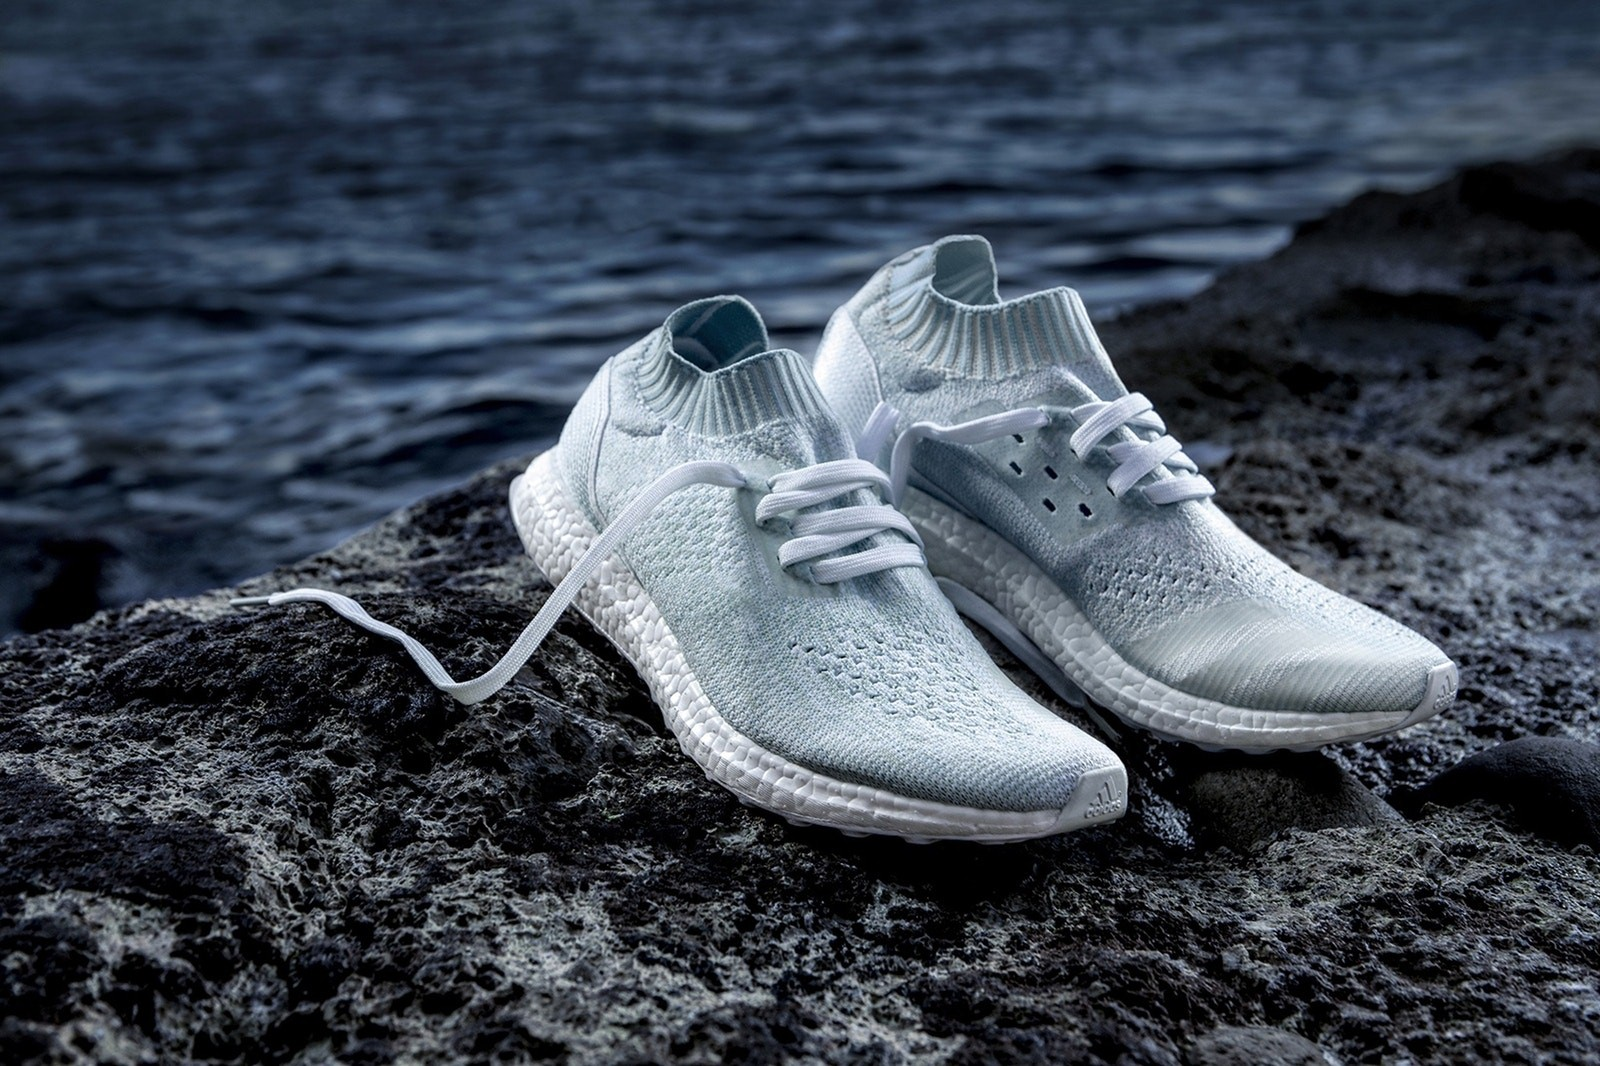 giay the thao tuan 1 thang 6.2017 - Parley x adidas UltraBOOST uncaged - elle man